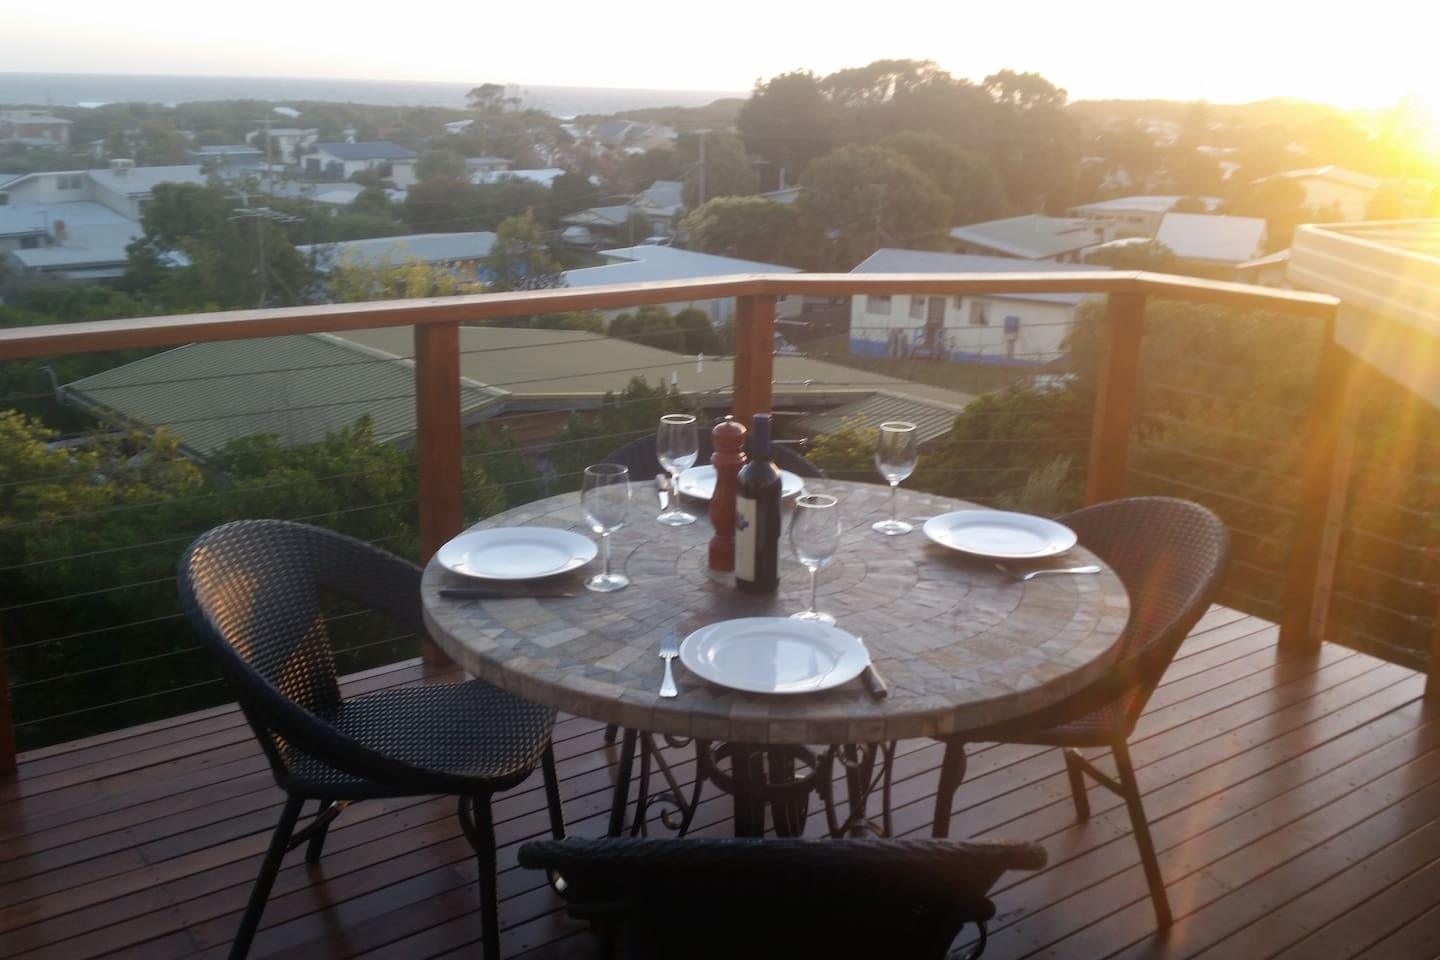 Our outdoor decking area is great for relaxing with amazing views across Cape Paterson from Cape Liptrap to the local surf beach.